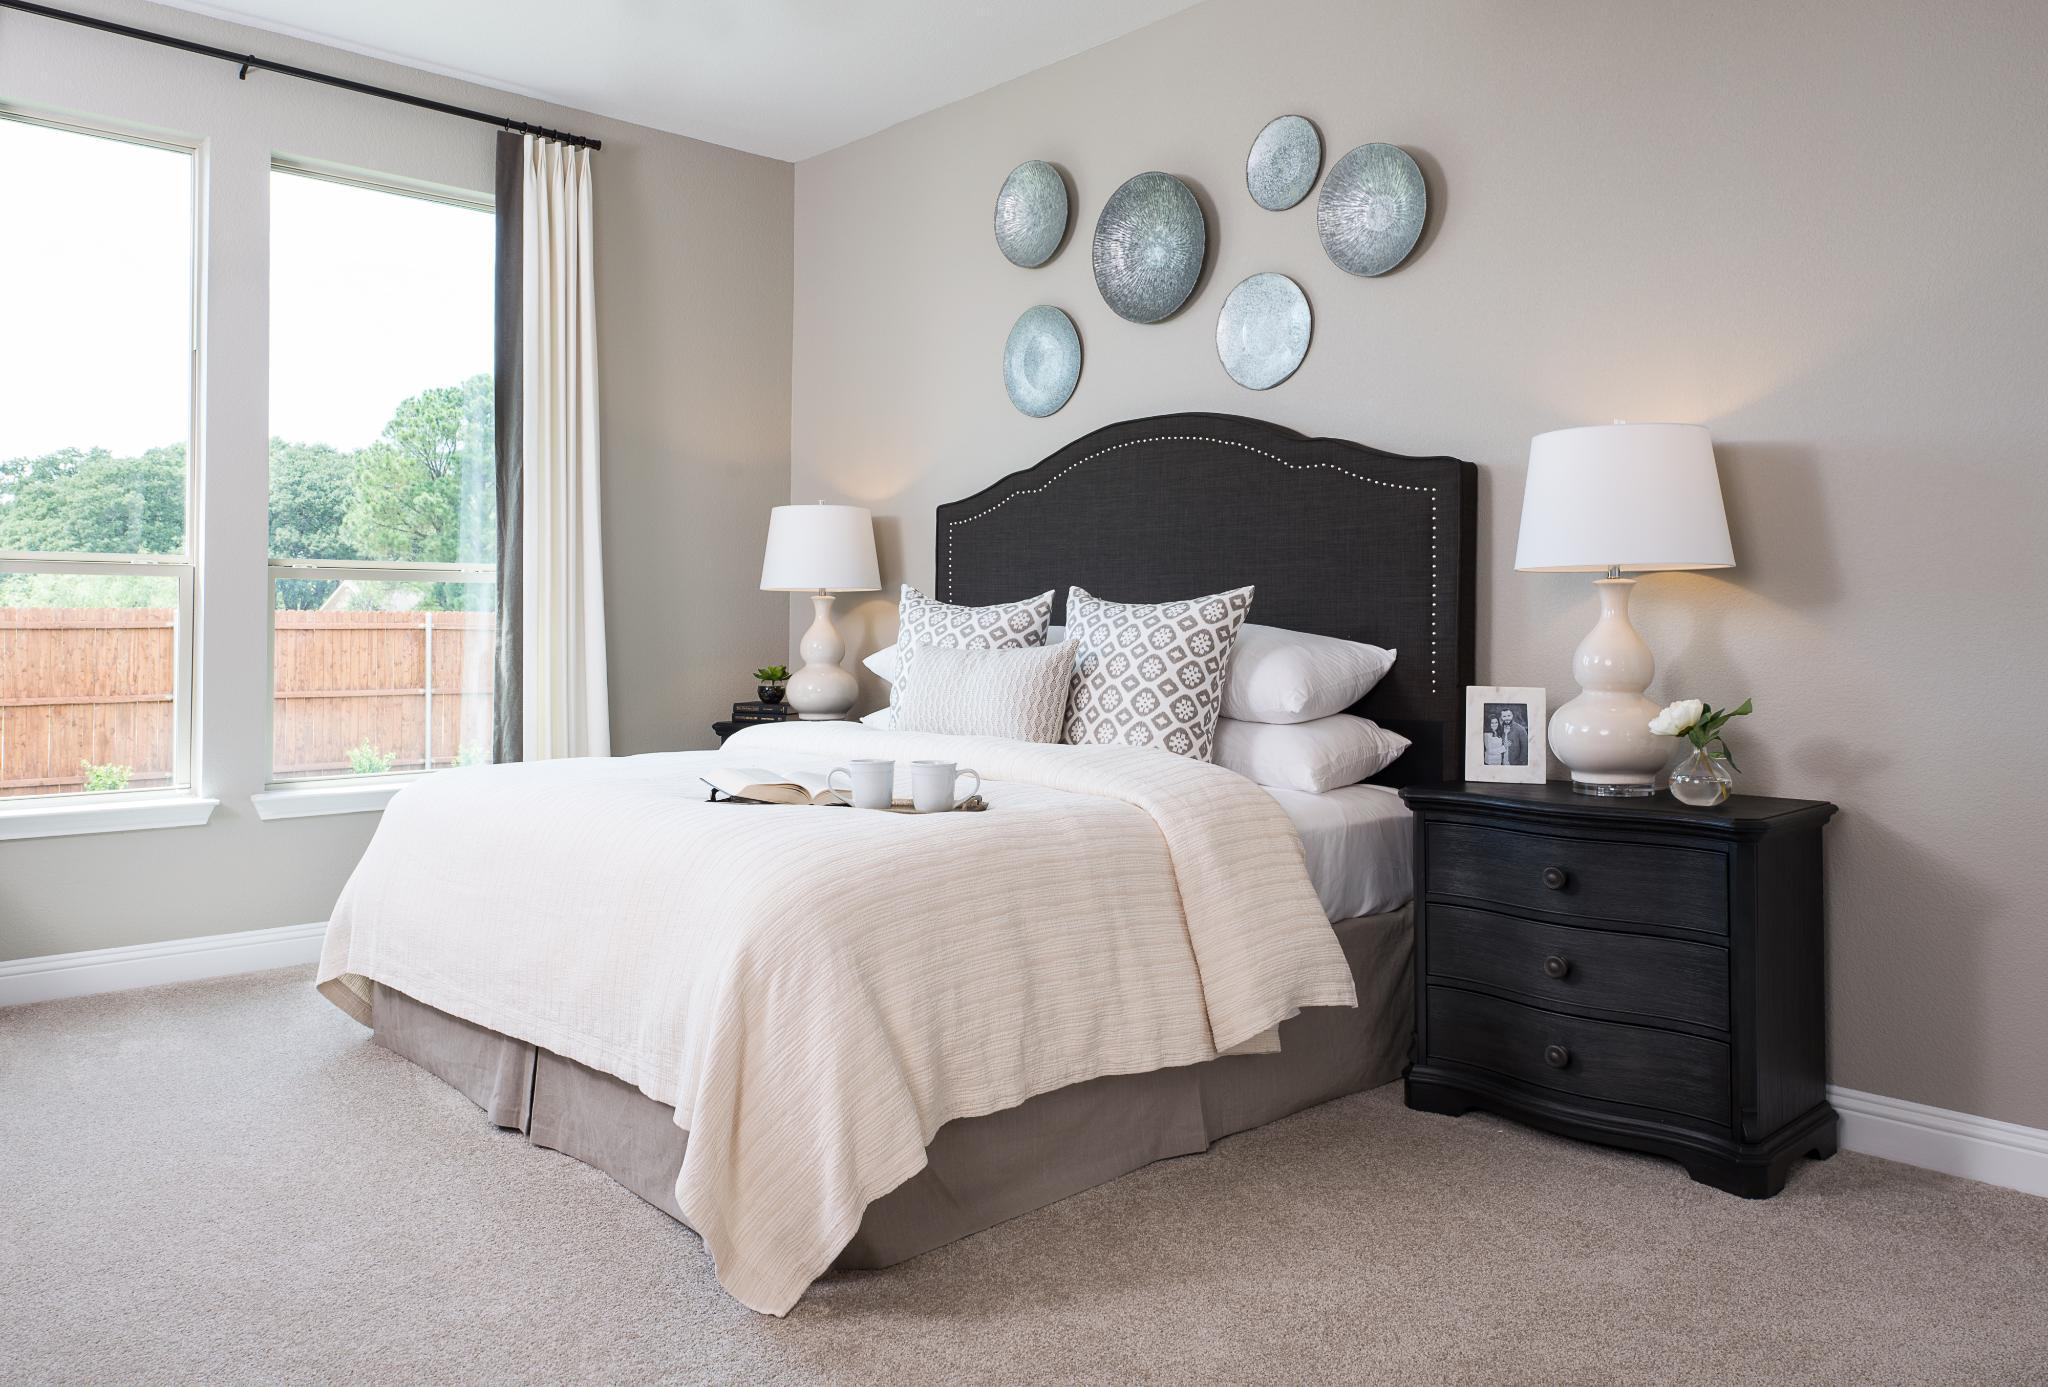 Bedroom featured in the 2267 By Antares Homes in Fort Worth, TX